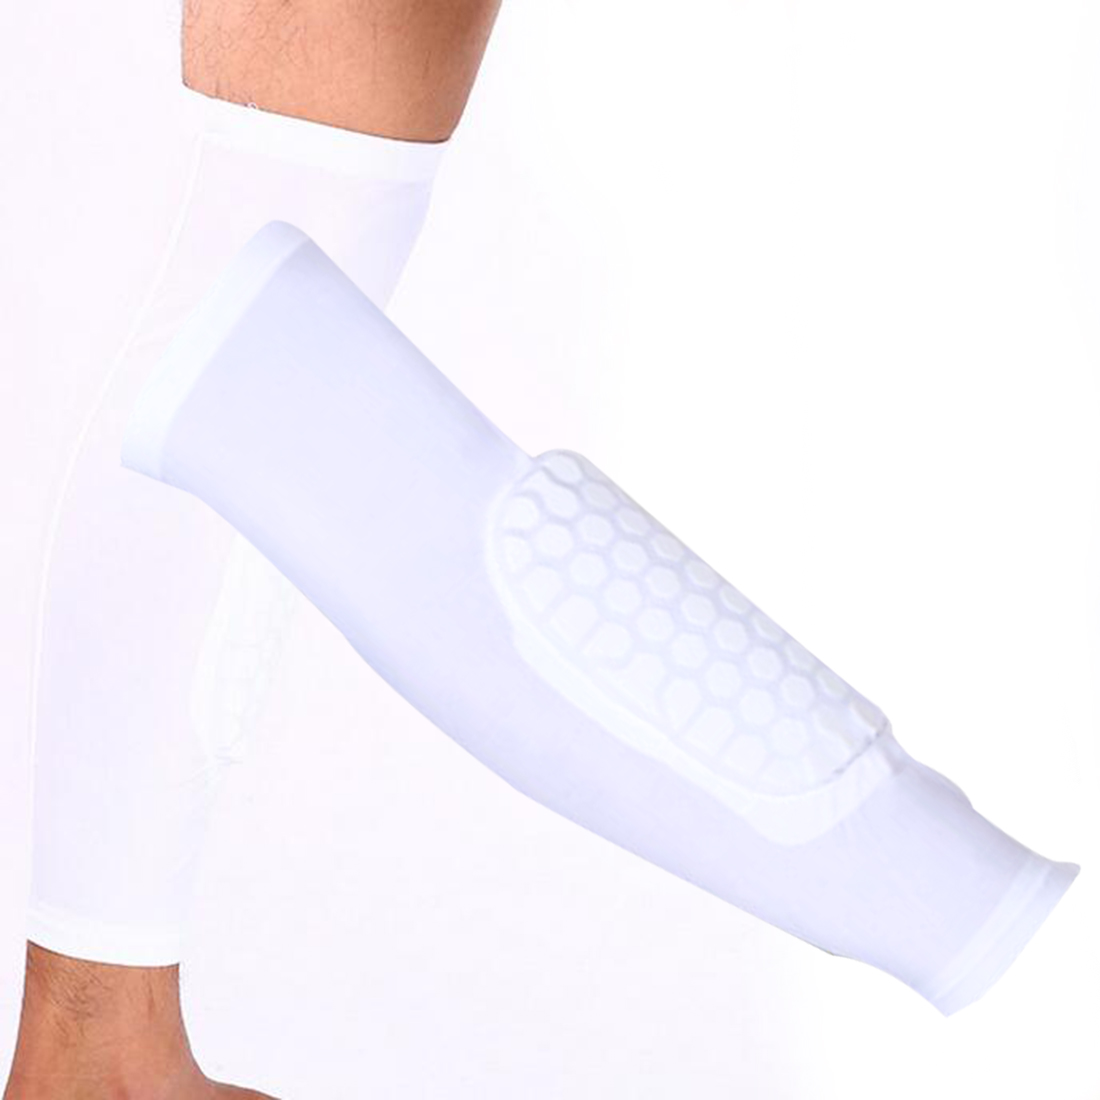 1Pc Breathable Sports Men Honeycomb Long Knee Support Brace Pad Protector Joelheira Sport Leg Sleeve Sports Knee Pad White